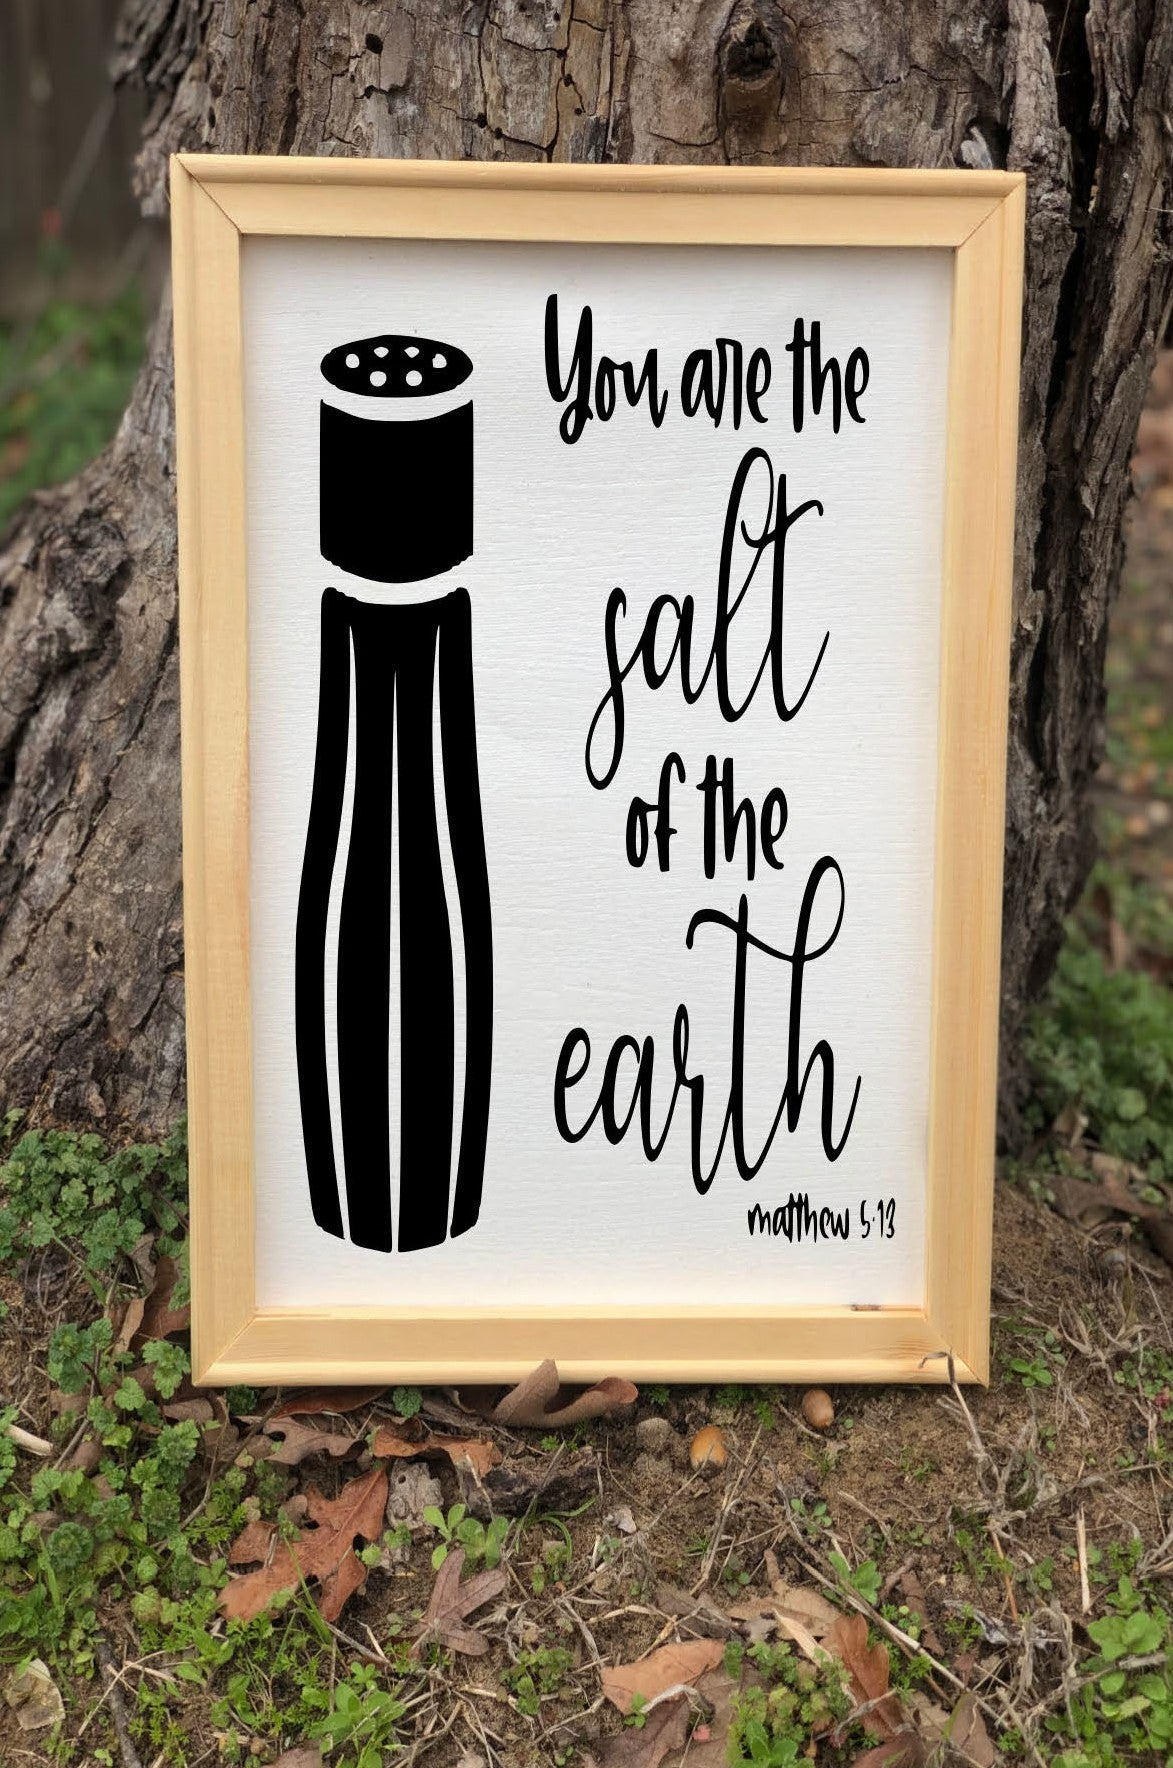 You are the salt of the earth/Matthew 5:13/Bible scripture/Jesus/Lord/Faith/Believe